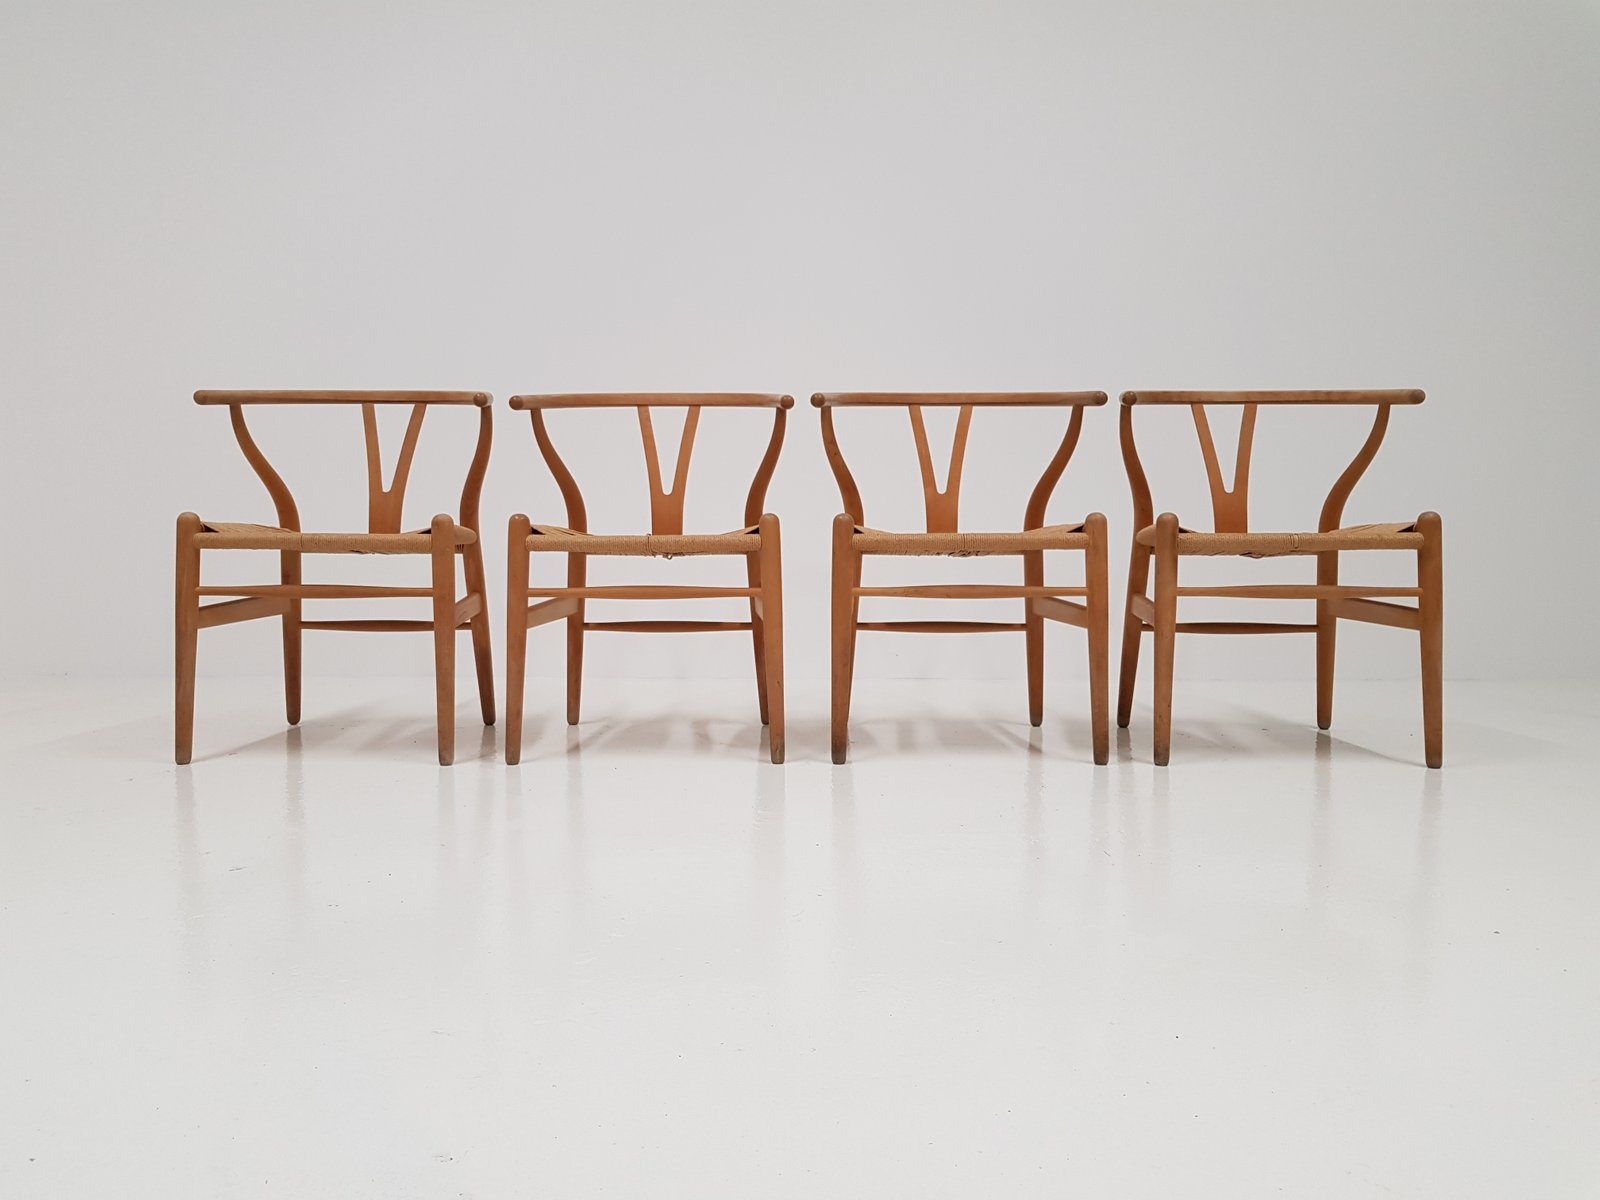 Wishbone Chairs Ch24 Wishbone Chairs By Hans J Wegner For Carl Hansen Søn Set Of 4